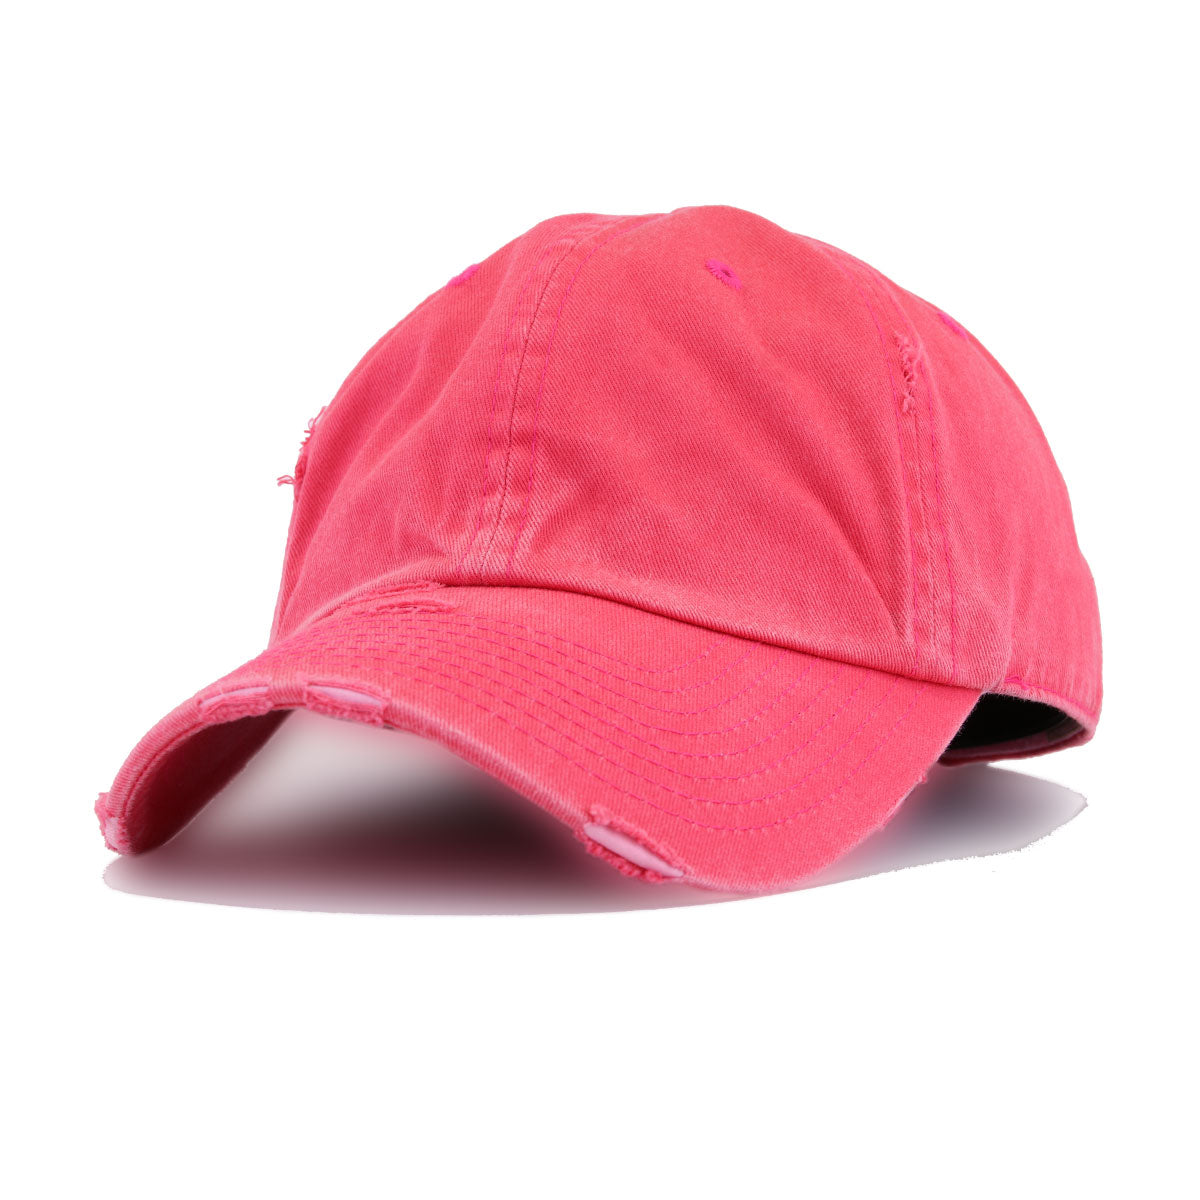 Distressed Pigmented Red KBEthos Vintage Dad Hat